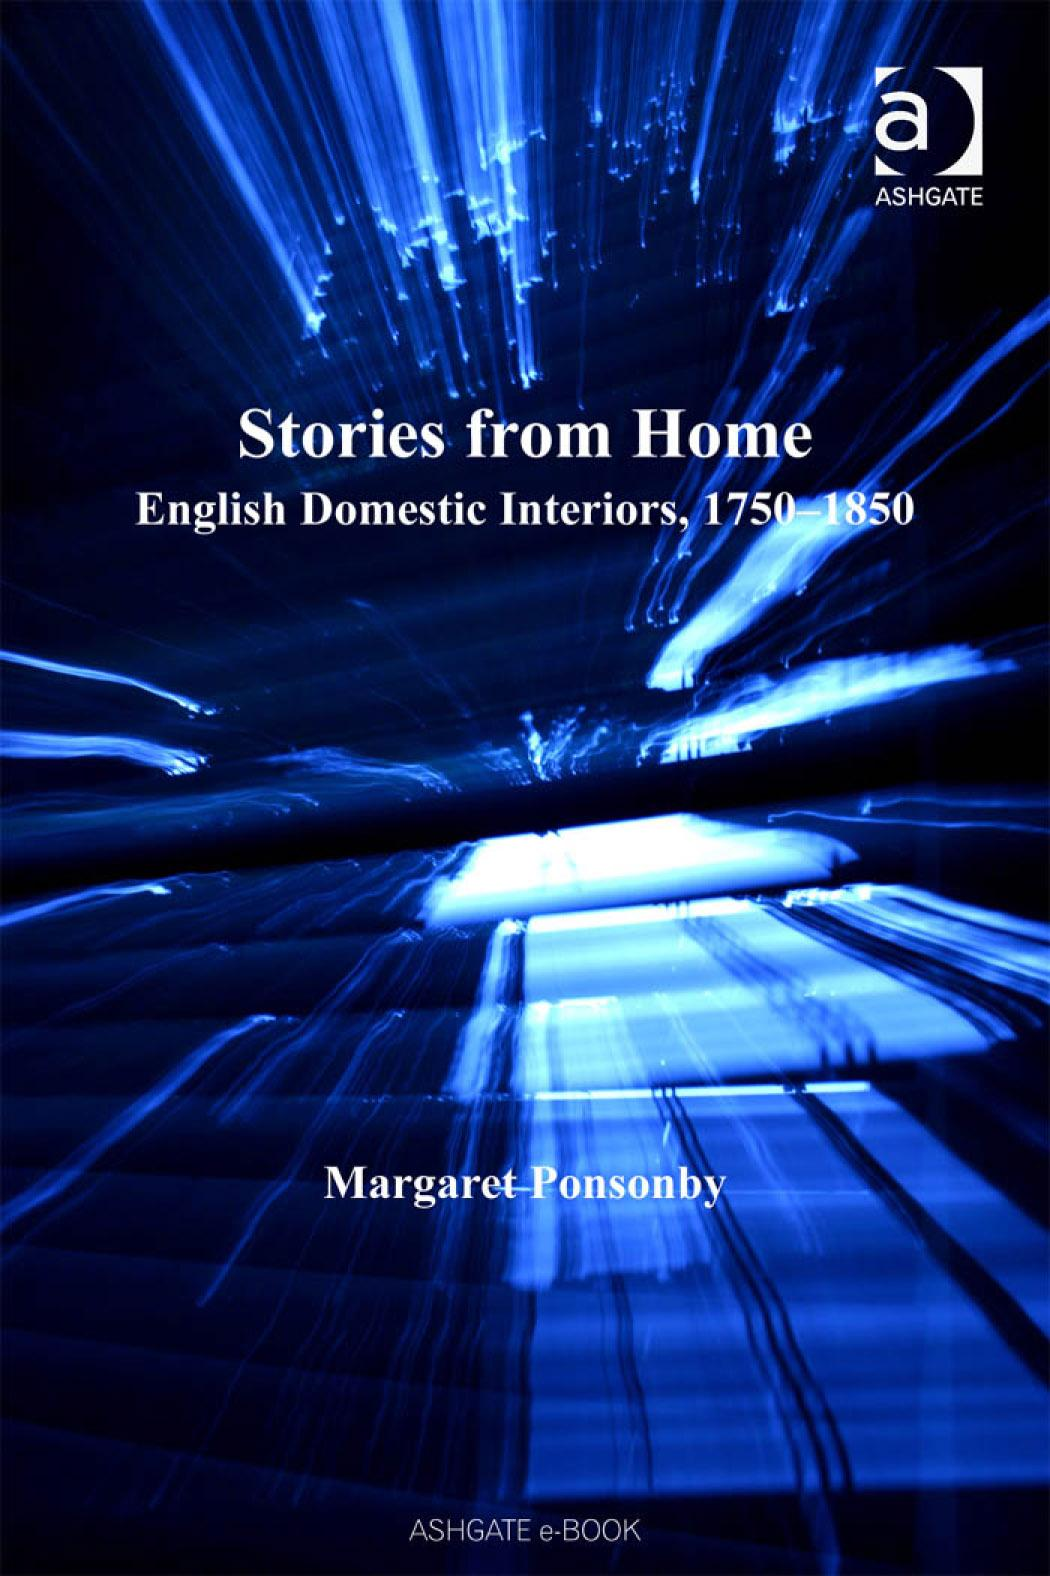 Stories from Home: English Domestic Interiors, 1750?1850